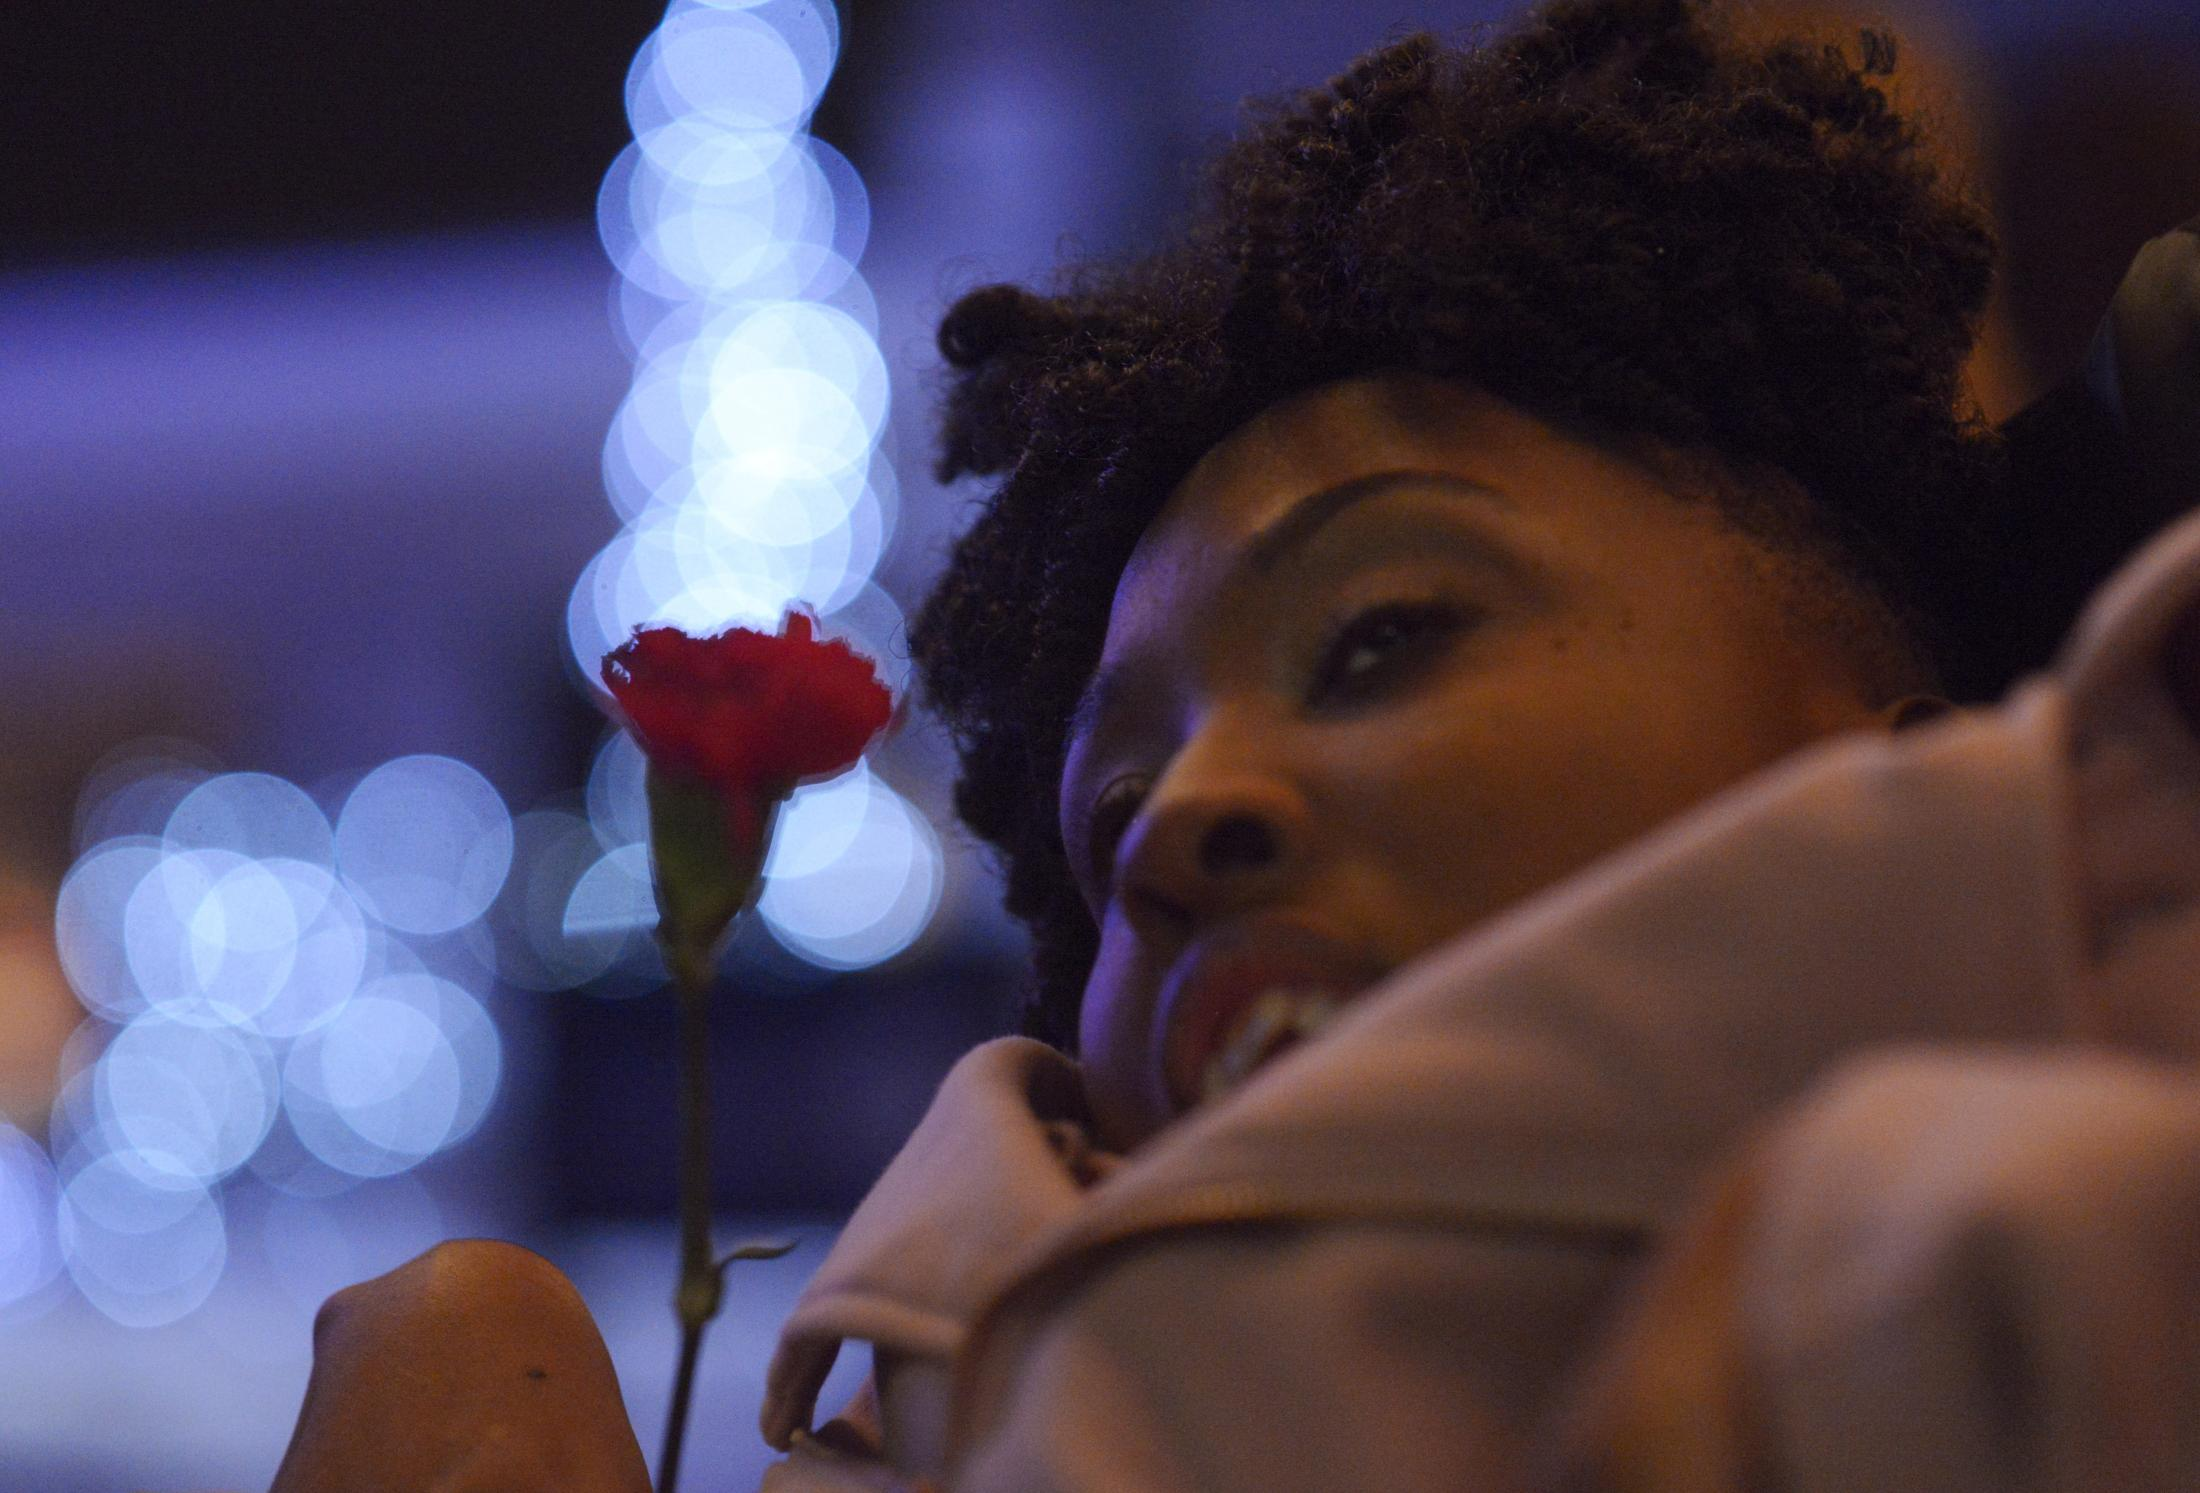 """Faith Jones arrives at the red carpet in a pink sequined dress carrying a red rose Friday, Feb. 7, 2020, at the Night to Shine dance at The Crossing in Columbia. She was escorted by Davonte Reedea. """"I have never seen her so happy and beautiful,"""" Reedea said."""